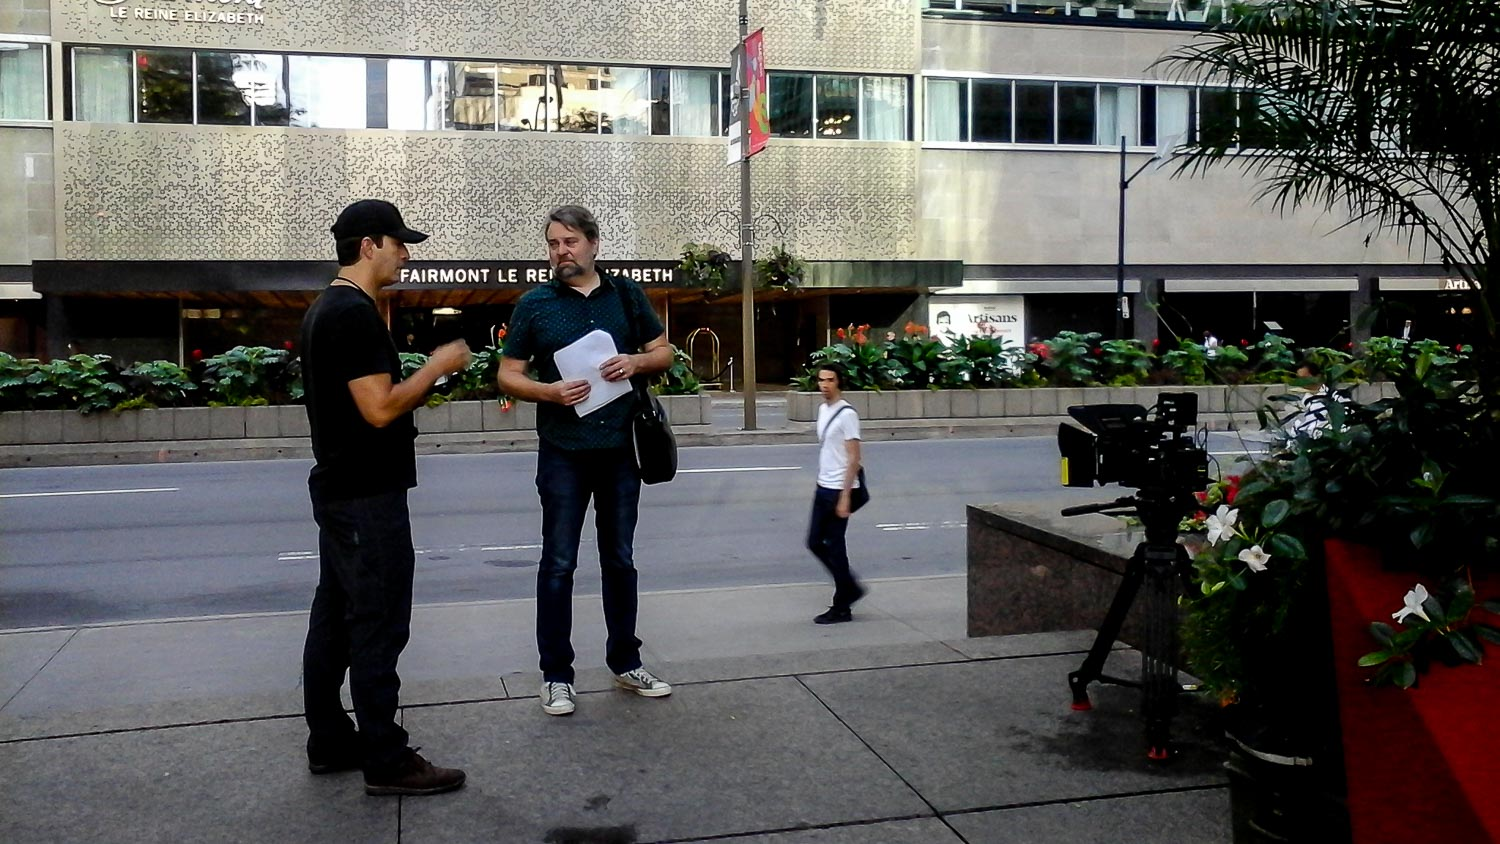 Richard Duquette Director of photography montreal during a production for ParticipAction